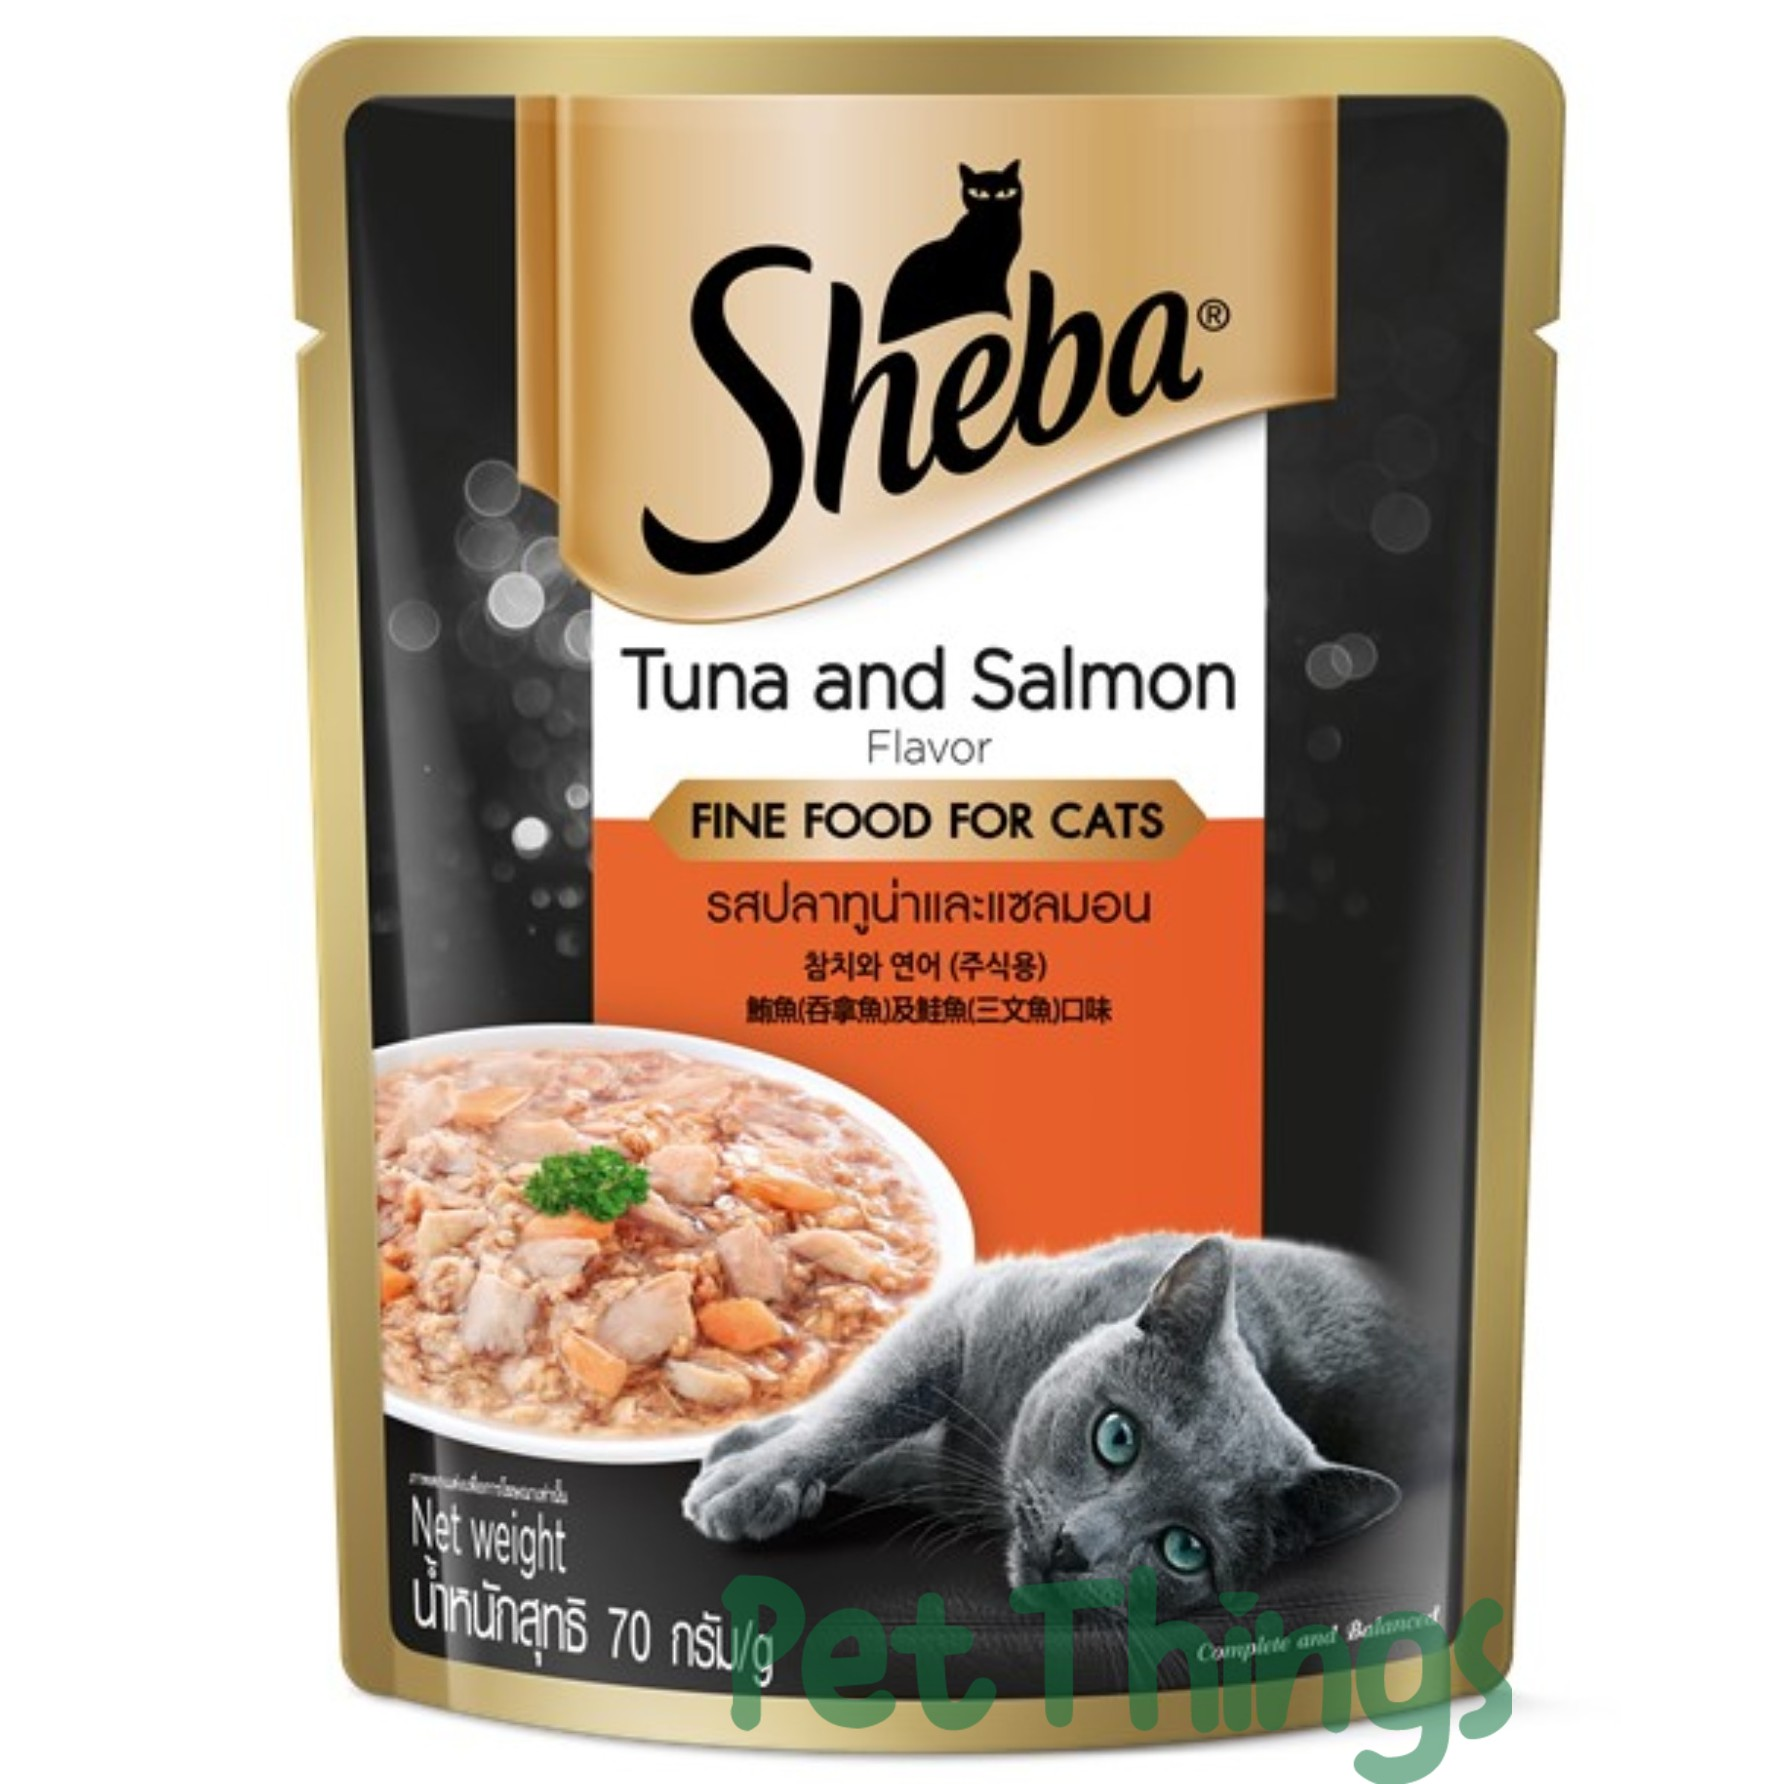 Sheba Tuna & Salmon in gravy 70g